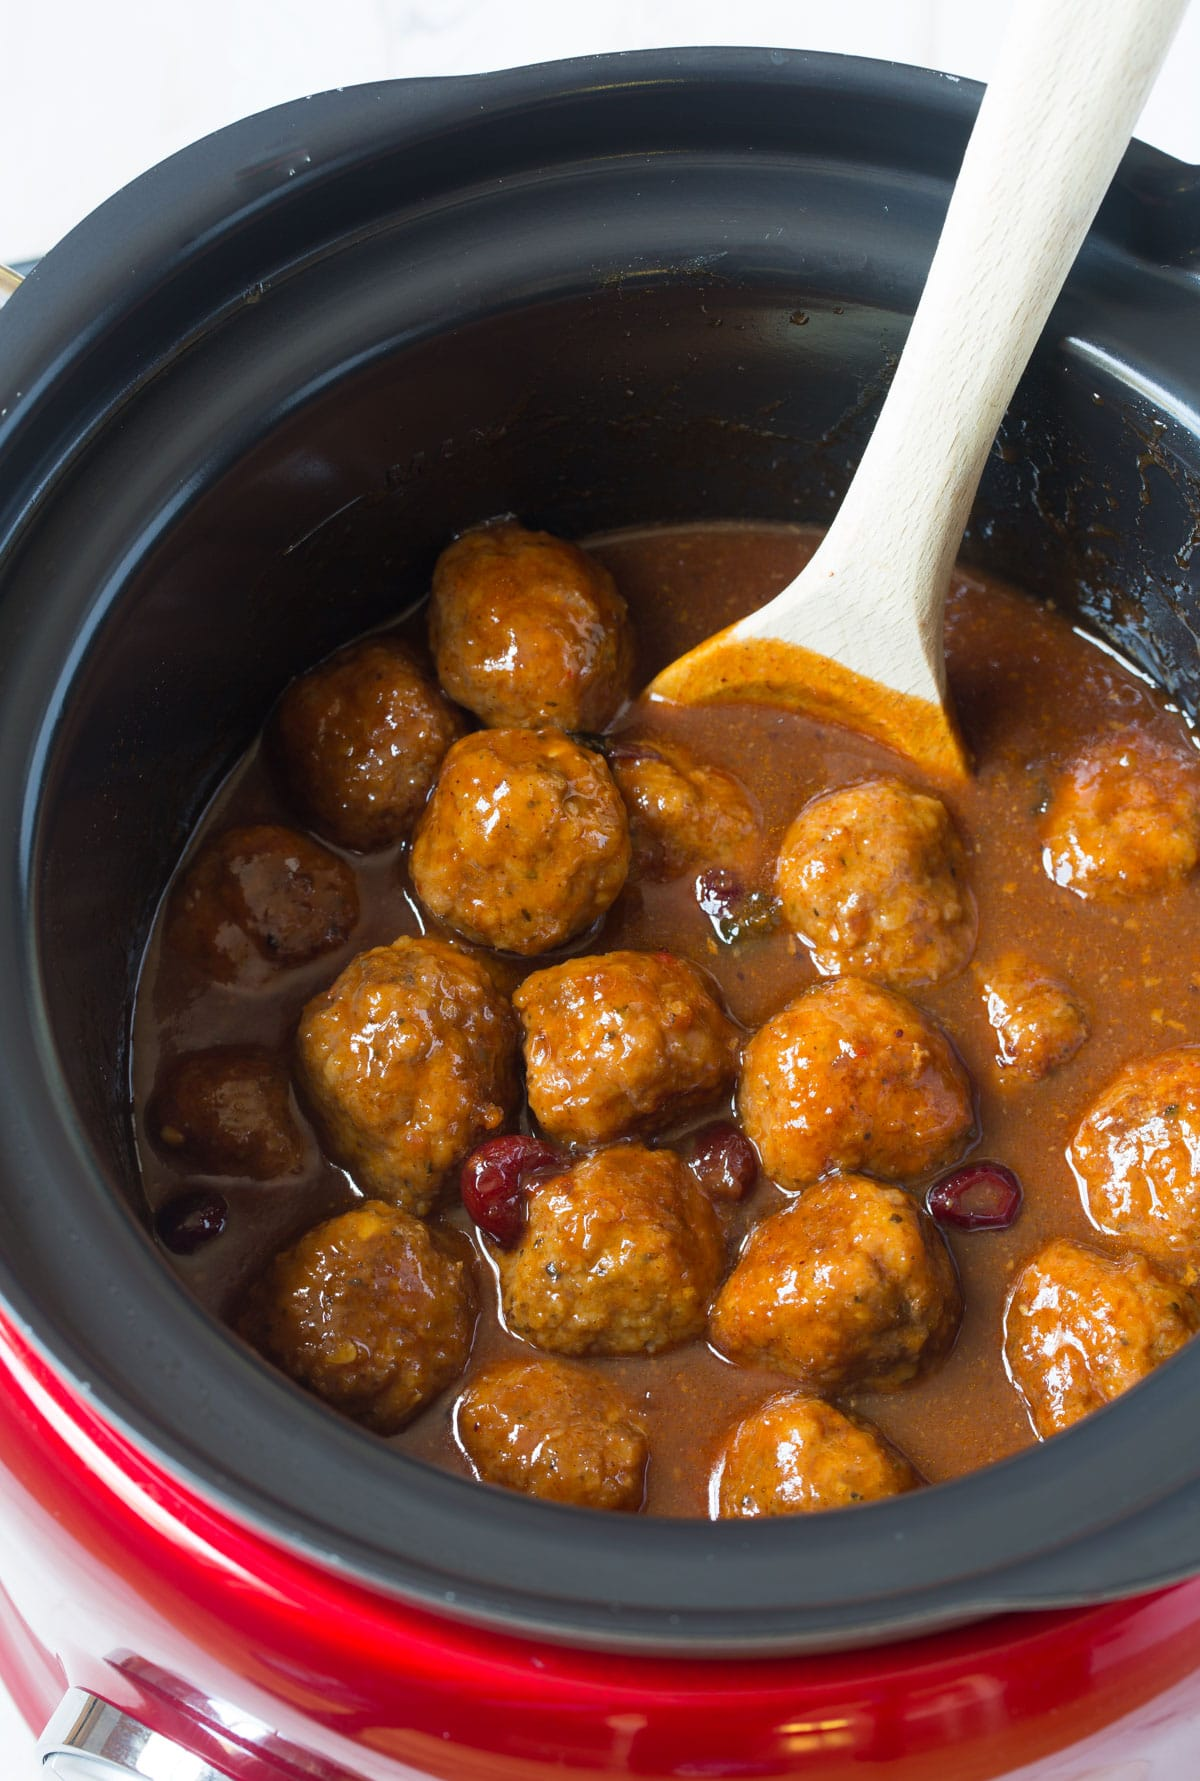 Spicy-Sweet Slow Cooker Cocktail Meatballs Recipe - (Crock Pot Meatballs) #ASpicyPerspective #meatballs #slowcooker #crockpot #meatballs